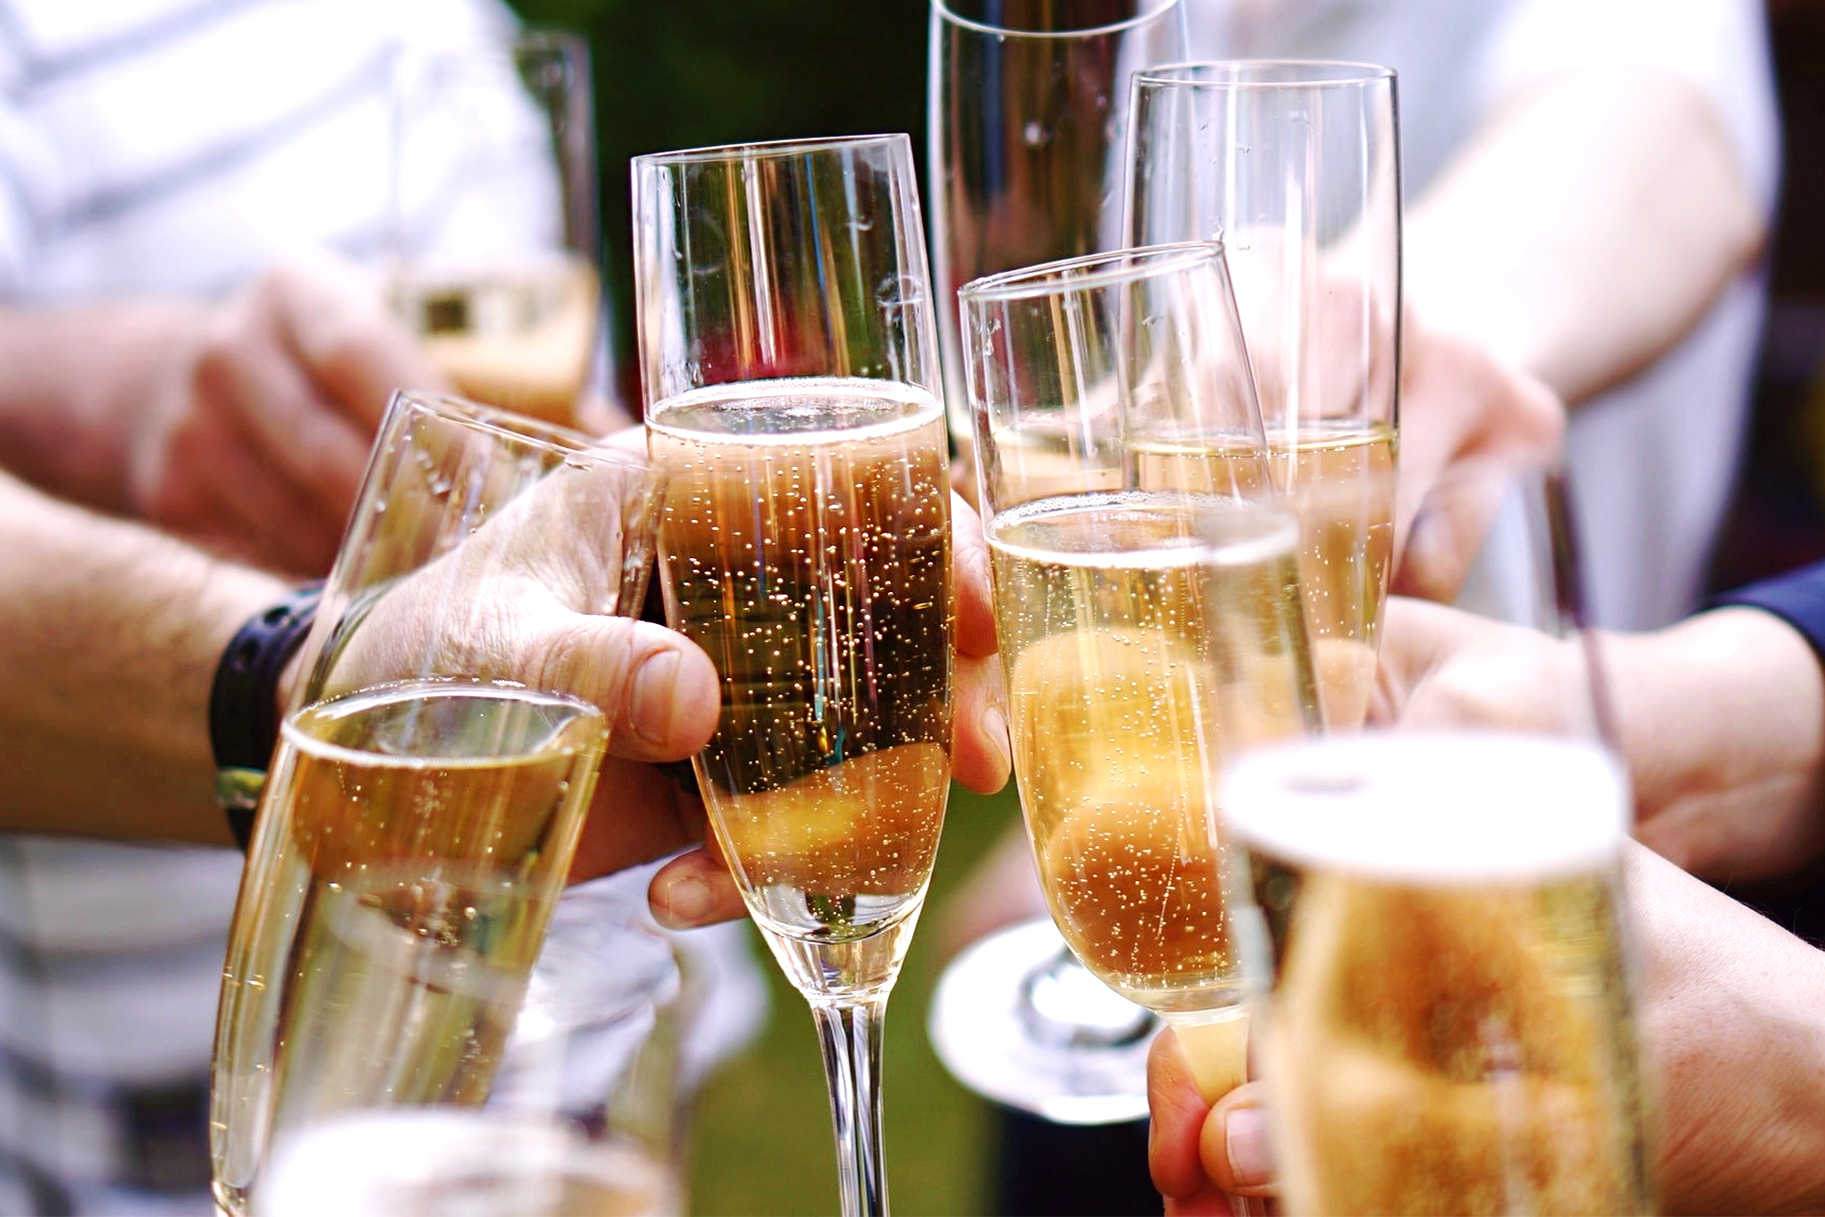 the-feast-champagne-shortage-cheers.jpg